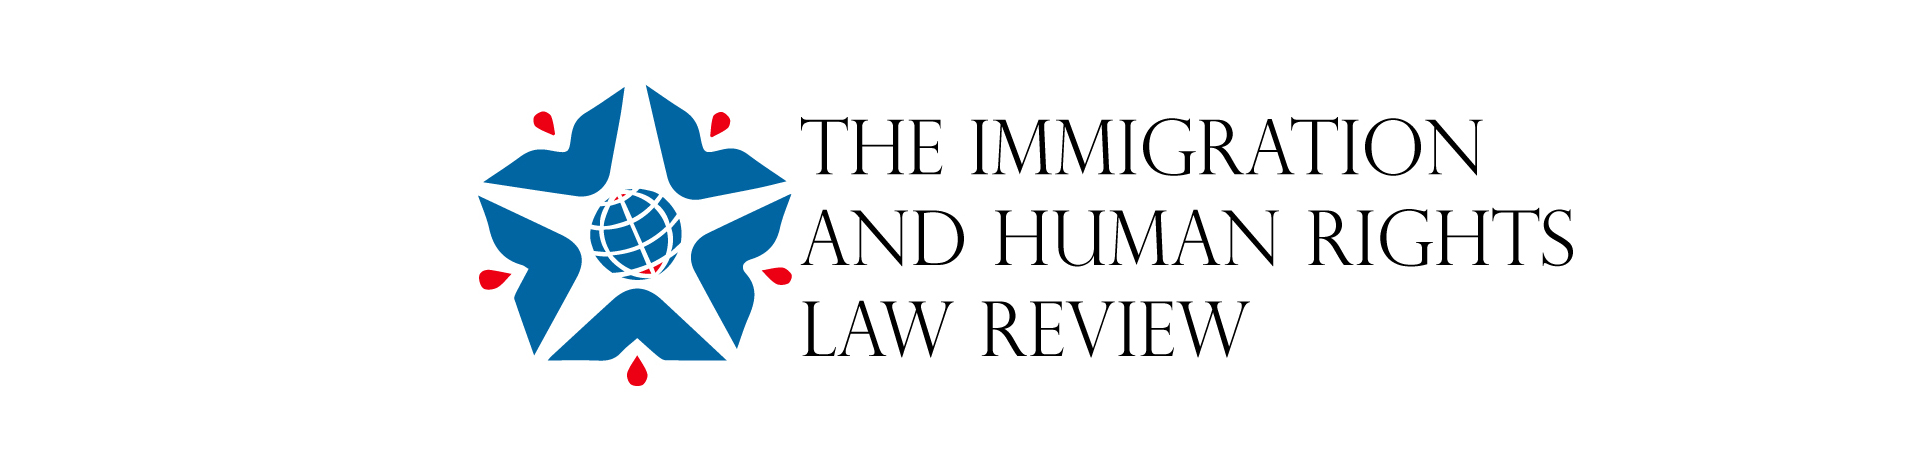 Immigration and Human Rights Law Review